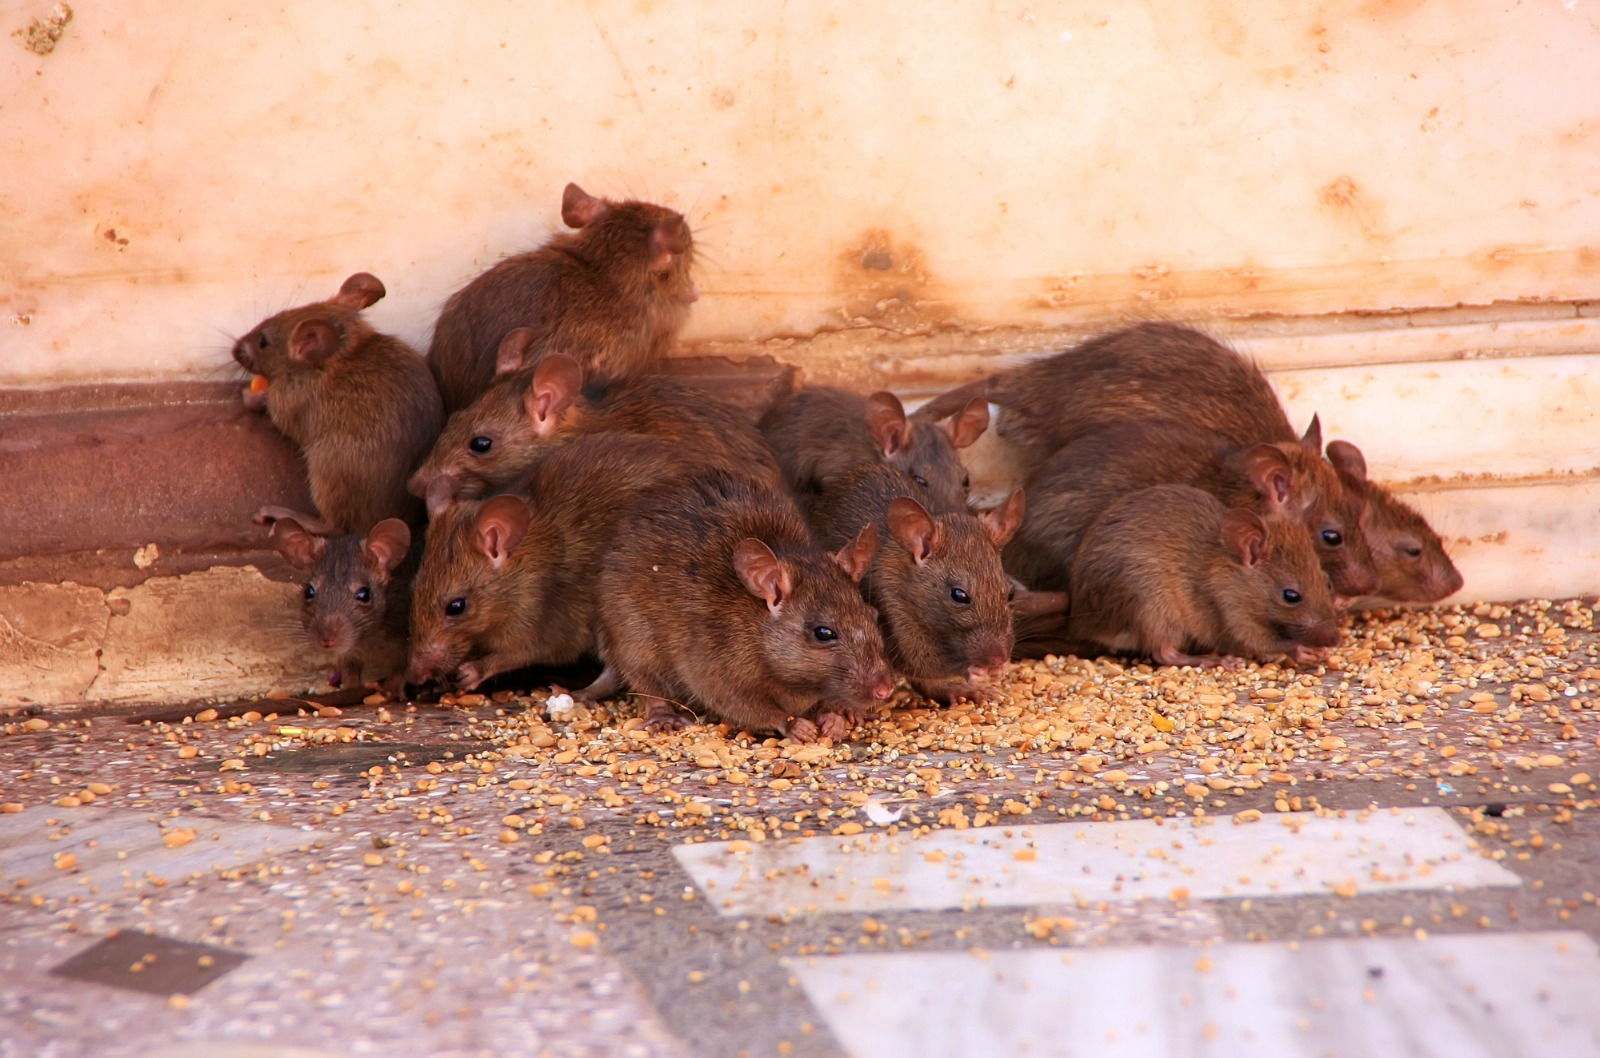 Reducing Rat Populations Through Humane Fertility Control